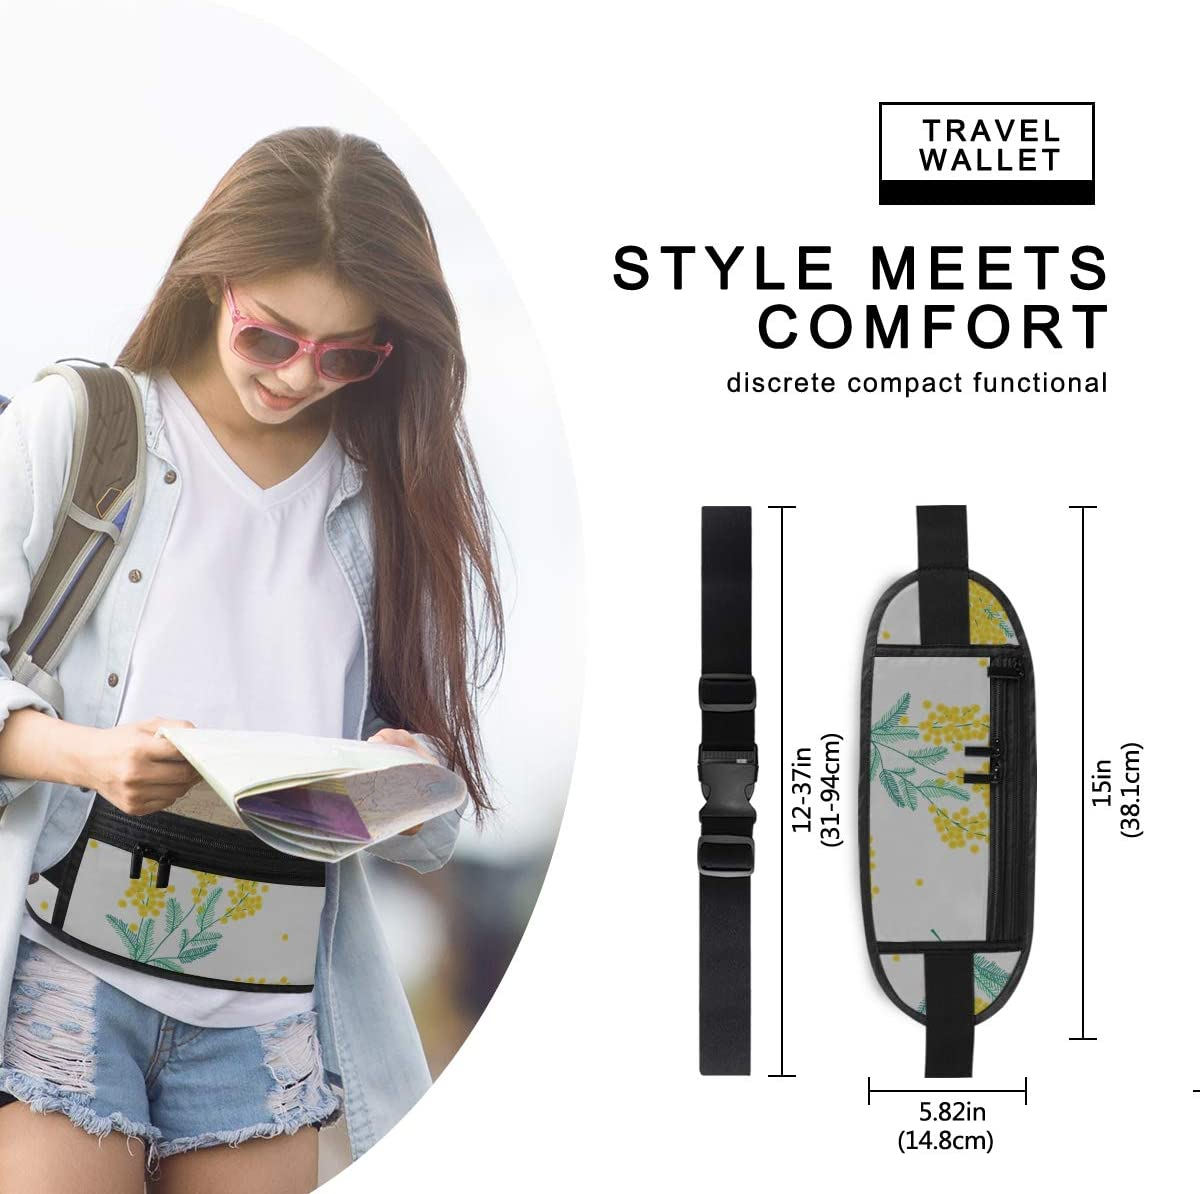 Botanical Pattern Yellow Mimosa Flowers Running Lumbar Pack For Travel Outdoor Sports Walking Travel Waist Pack,travel Pocket With Adjustable Belt